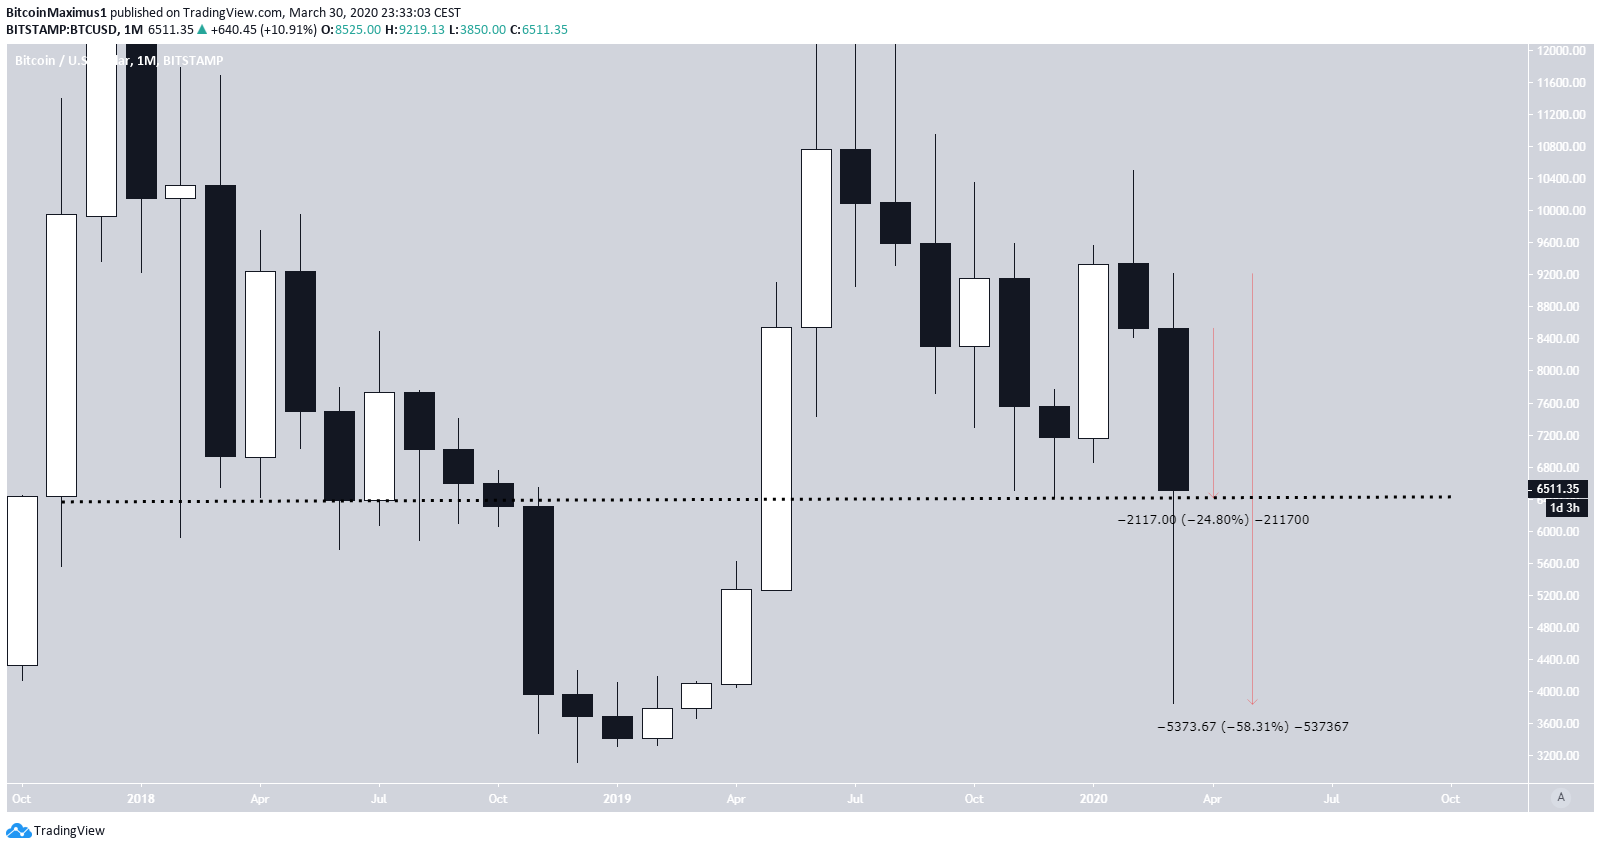 Bitcoin Monthly Candlestick